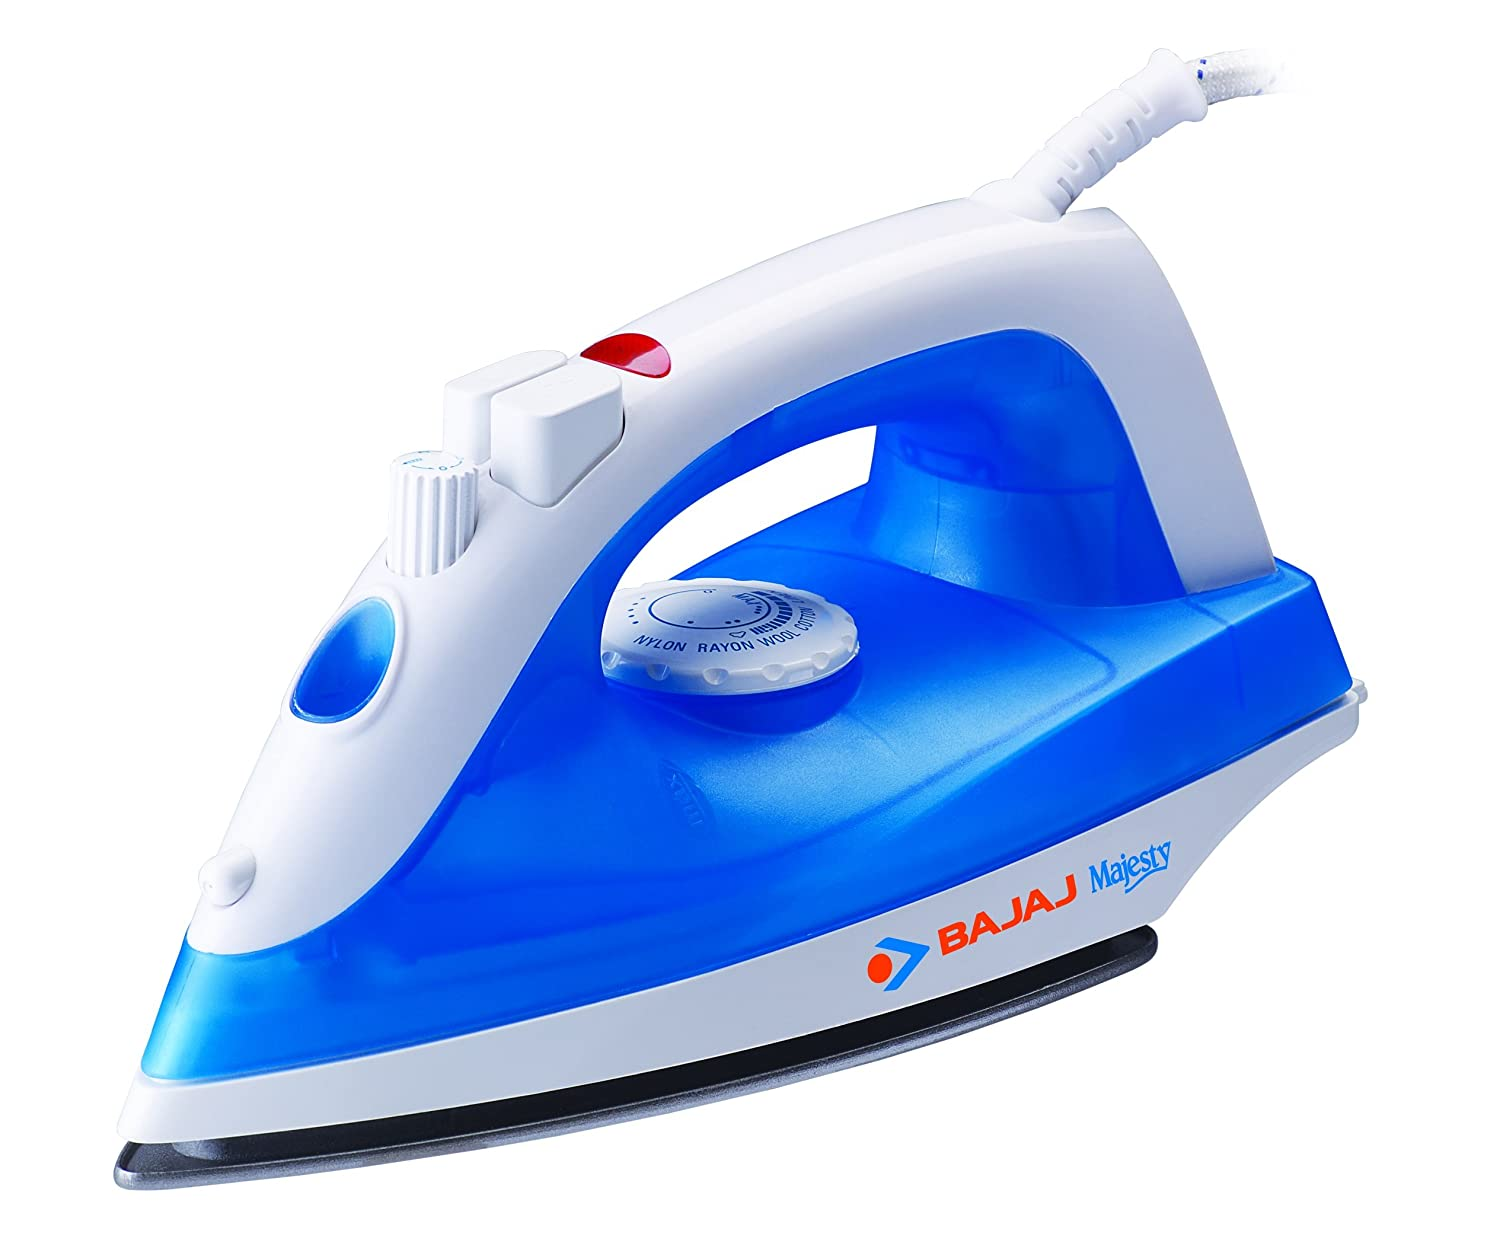 Get Bajaj Majesty Steam Iron  At Rs 649 Modelled MX 20 1200-Watt